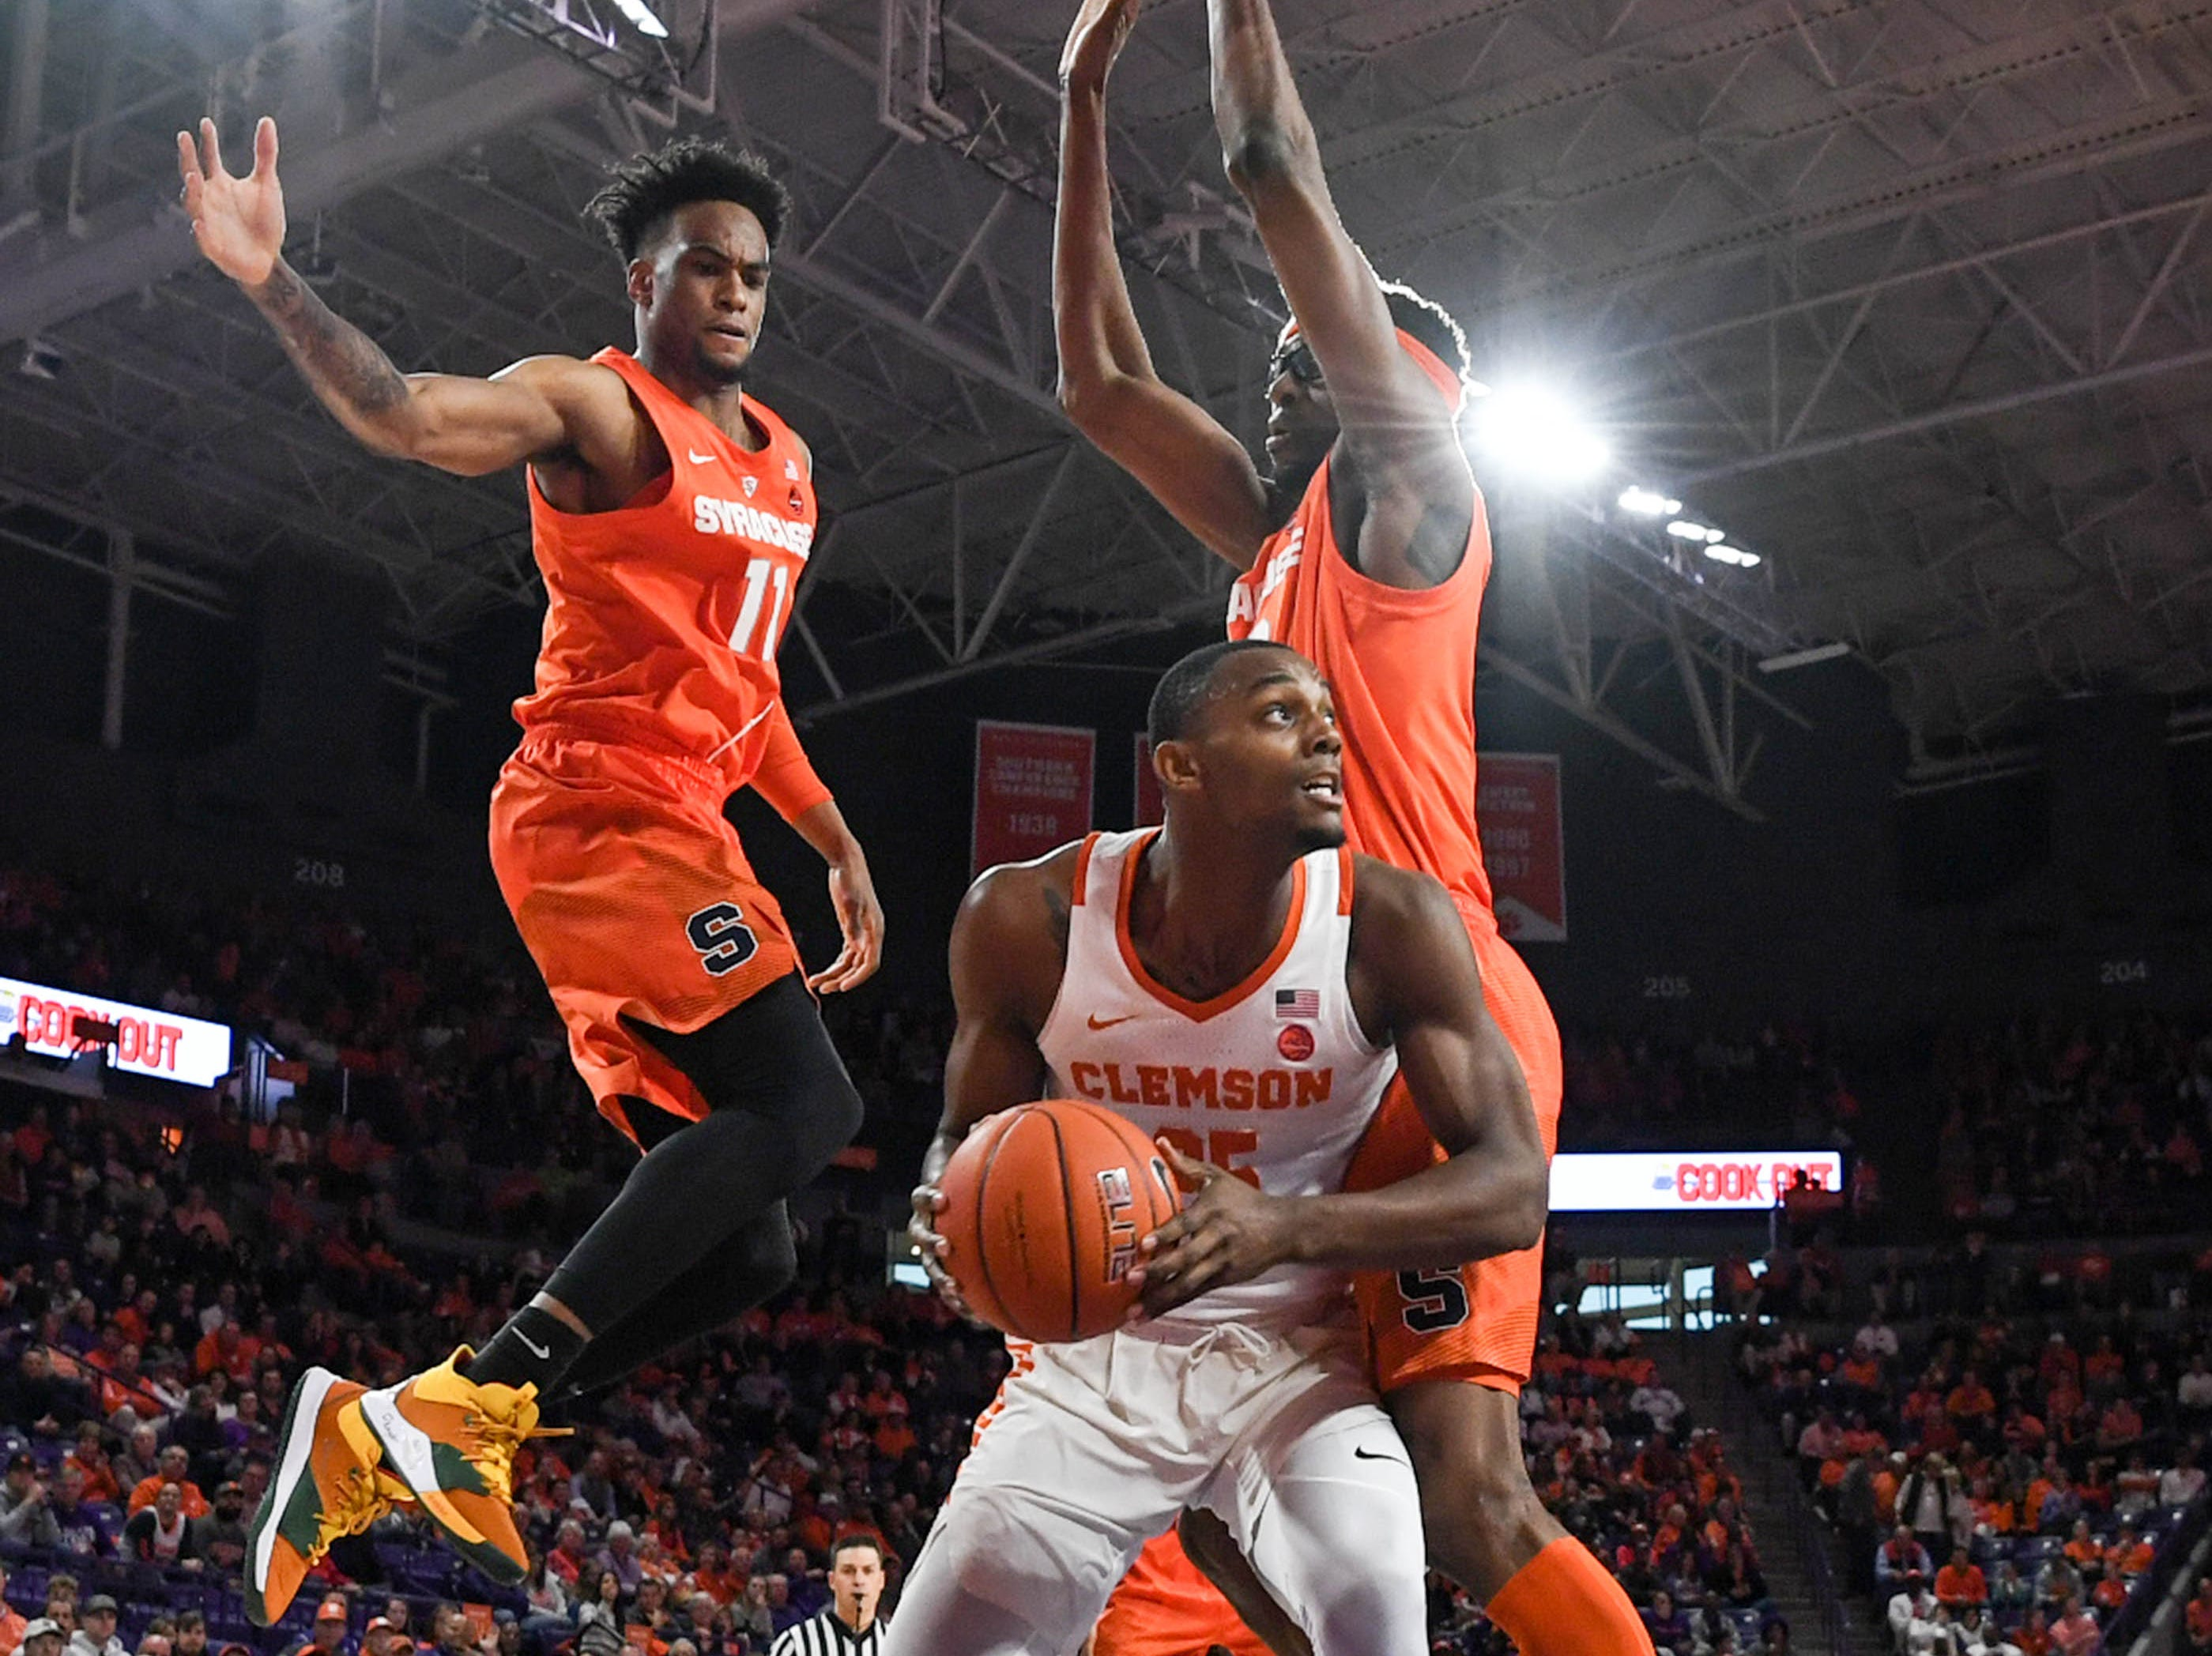 Clemson forward Aamir Simms (25) looks for an opportunity to shoot near Syracuse forward Oshae Brissett(11), left, and Syracuse center Paschal Chukwu(13) during the first half in Littlejohn Coliseum in Clemson Saturday, March 9, 2019.